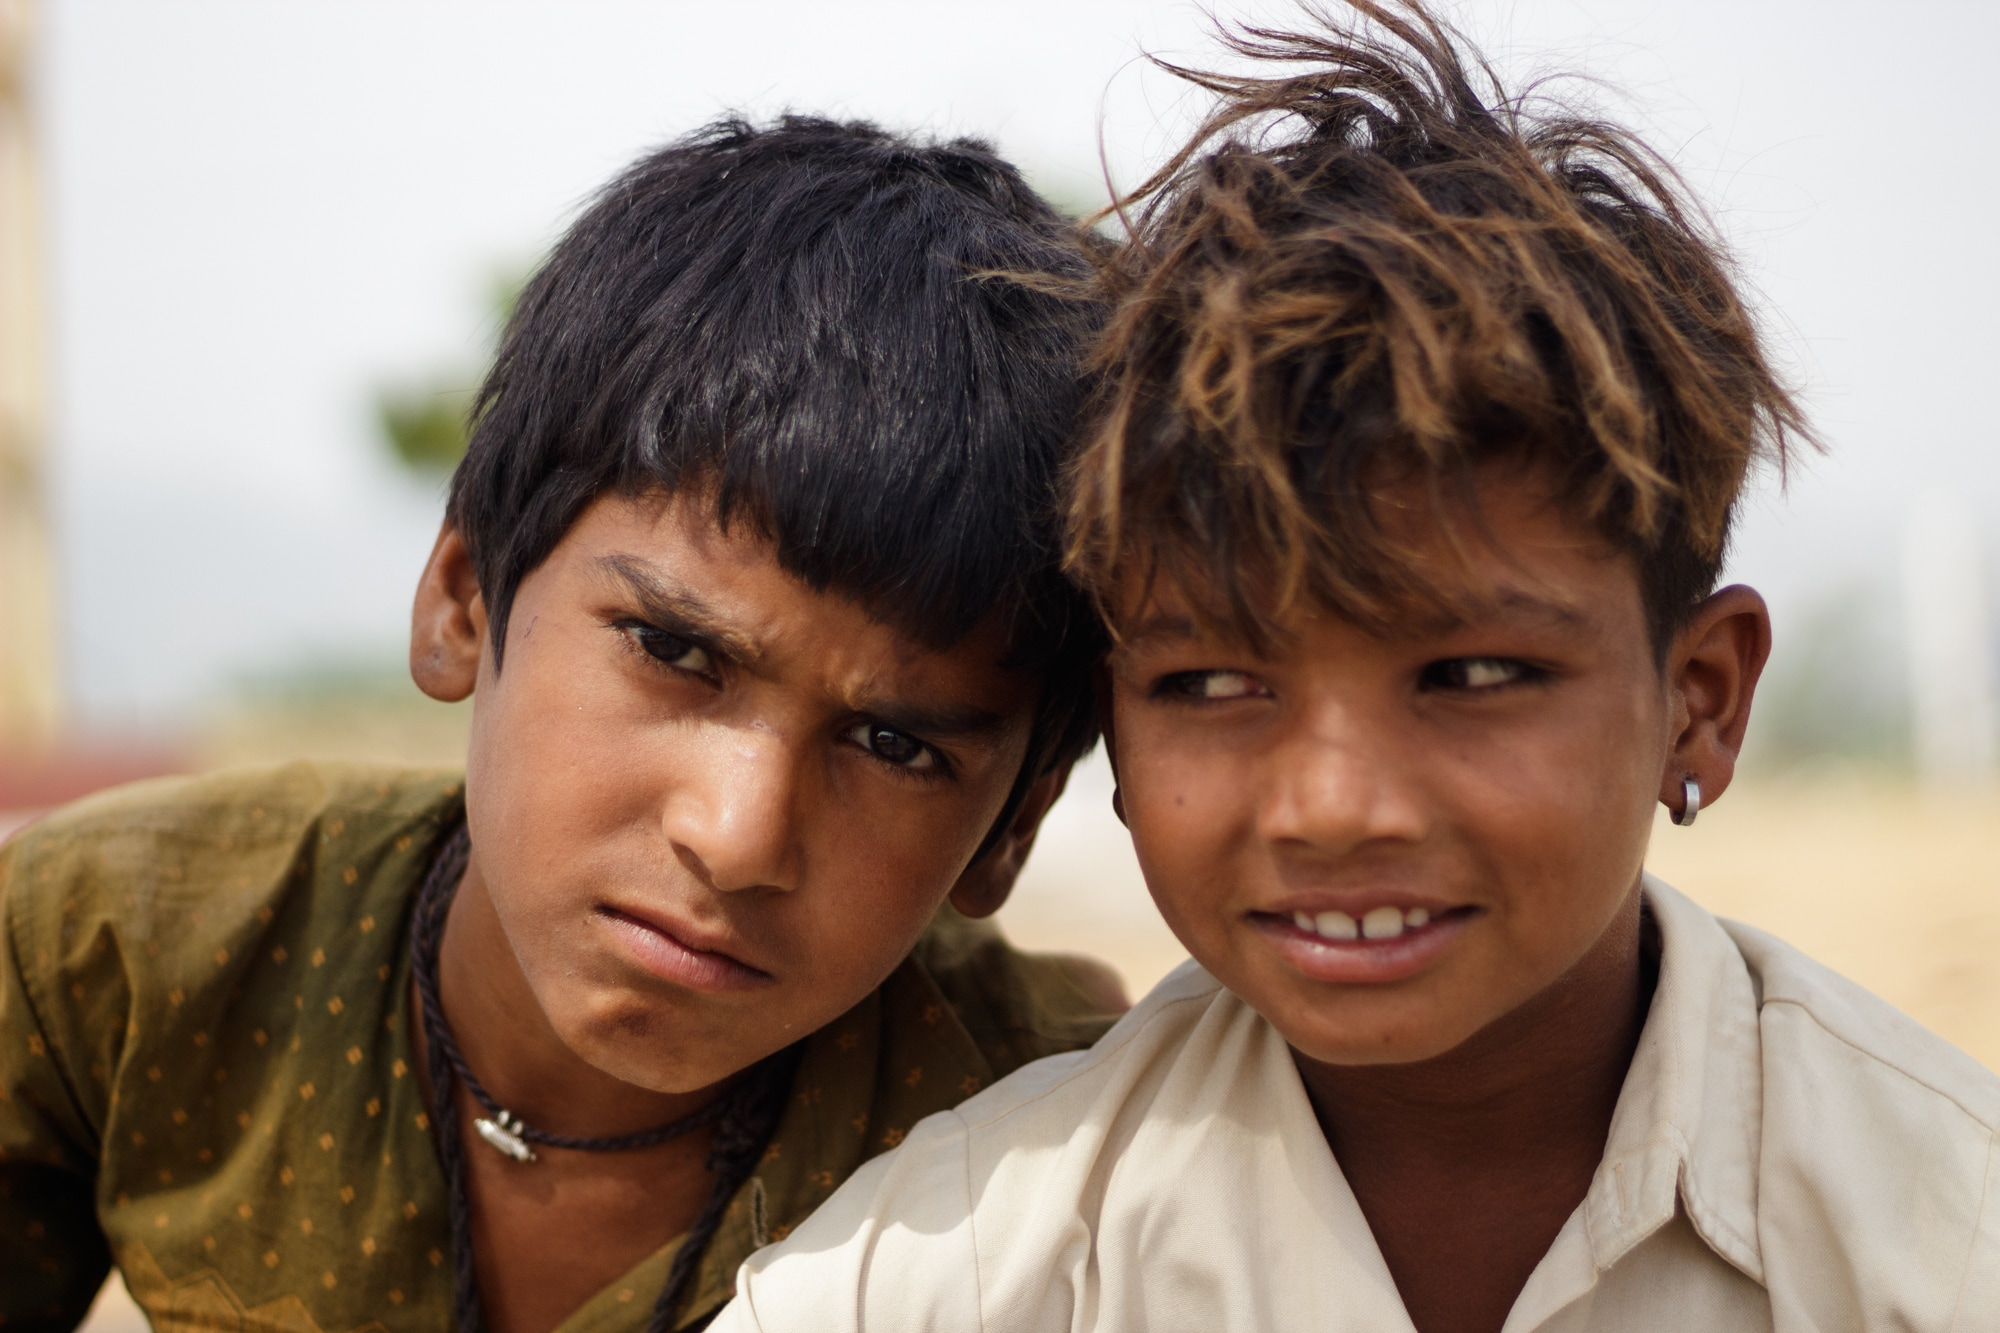 A young boy interrupts as his friend poses for a picture. Pushkar, Rajasthan.